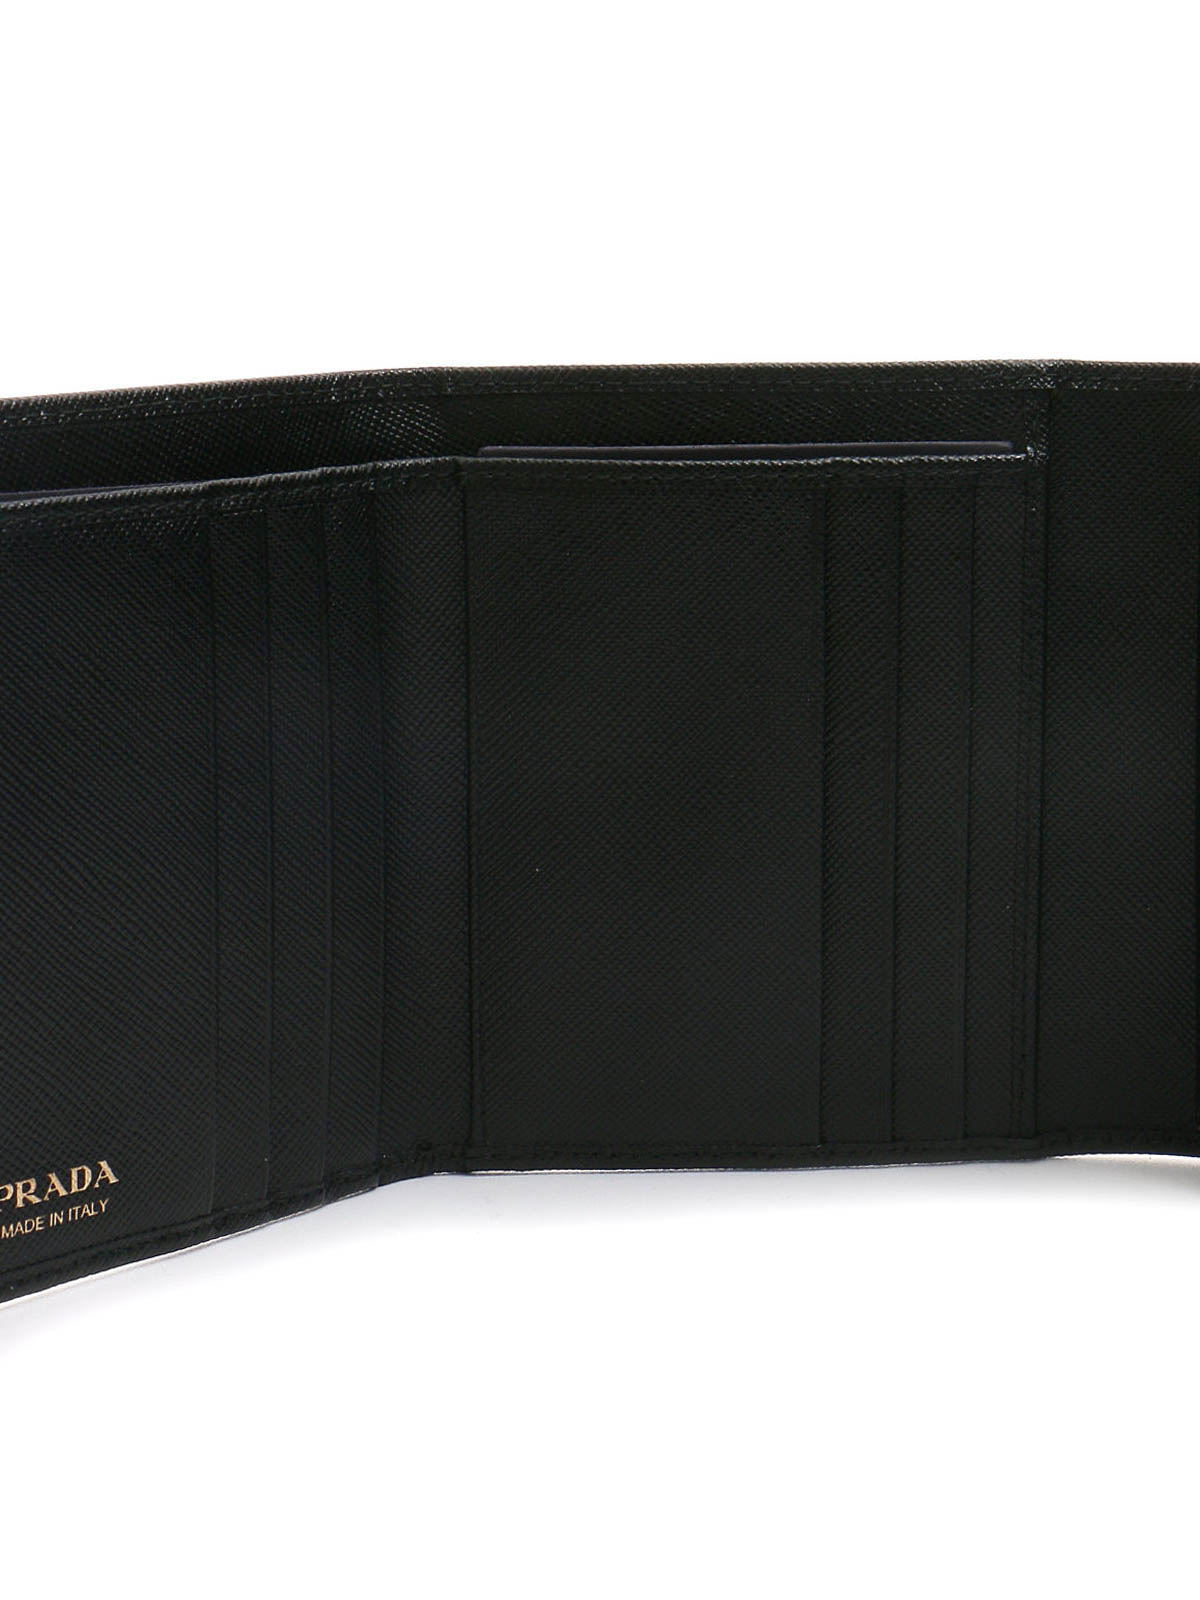 prada bags handbags - Saffiano leather flap wallet by Prada - wallets \u0026amp; purses | iKRIX